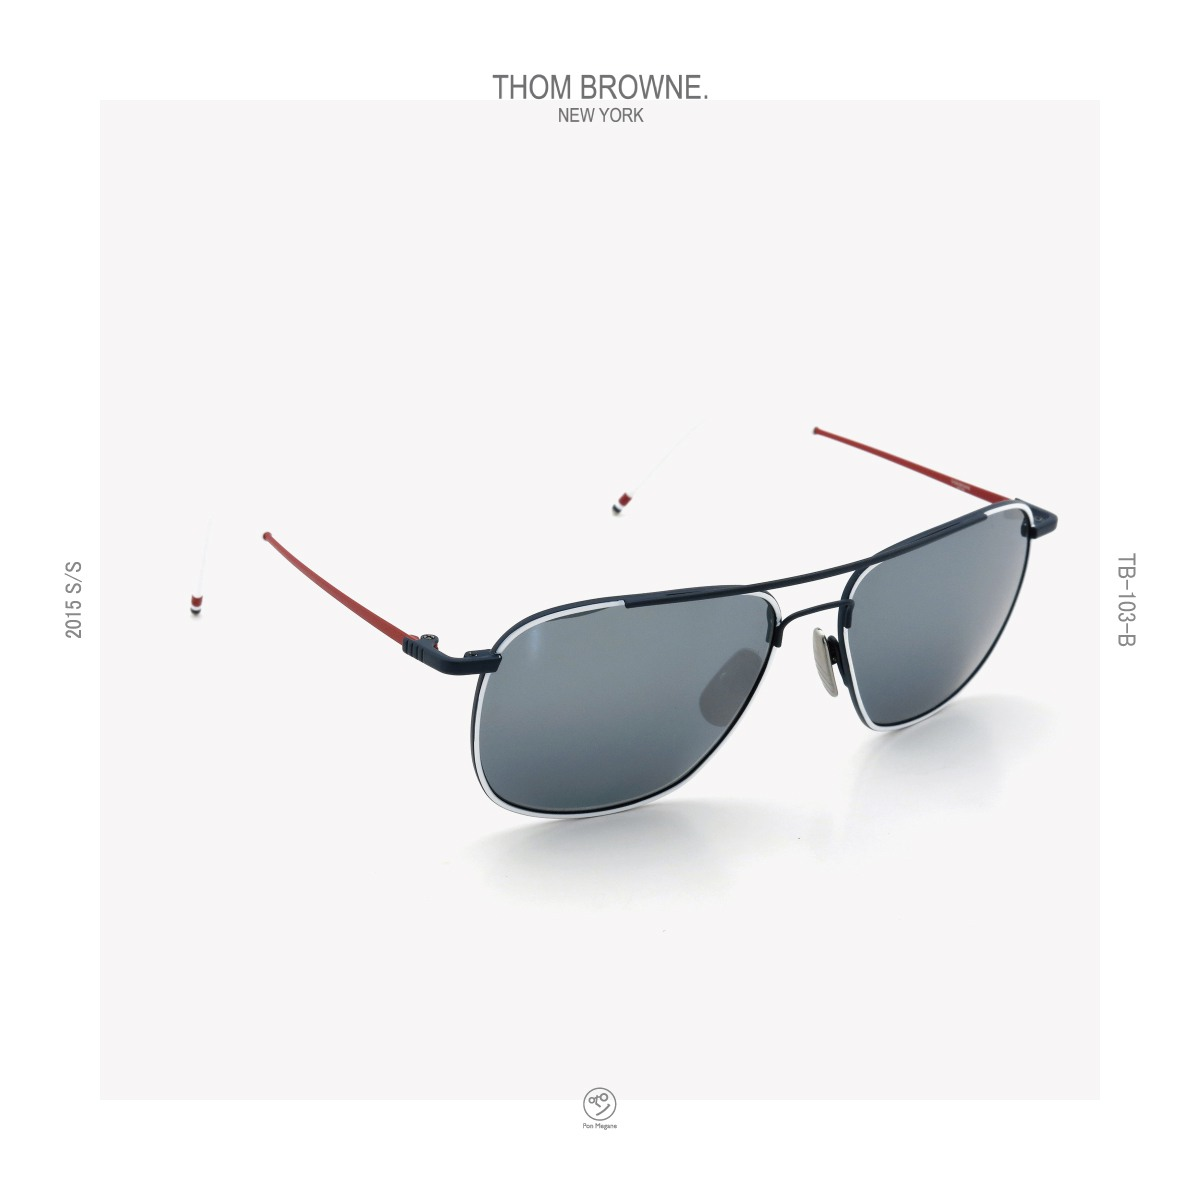 THOM-BROWNE 2015s/s TB-103-B WHT-NVY-RED 58size